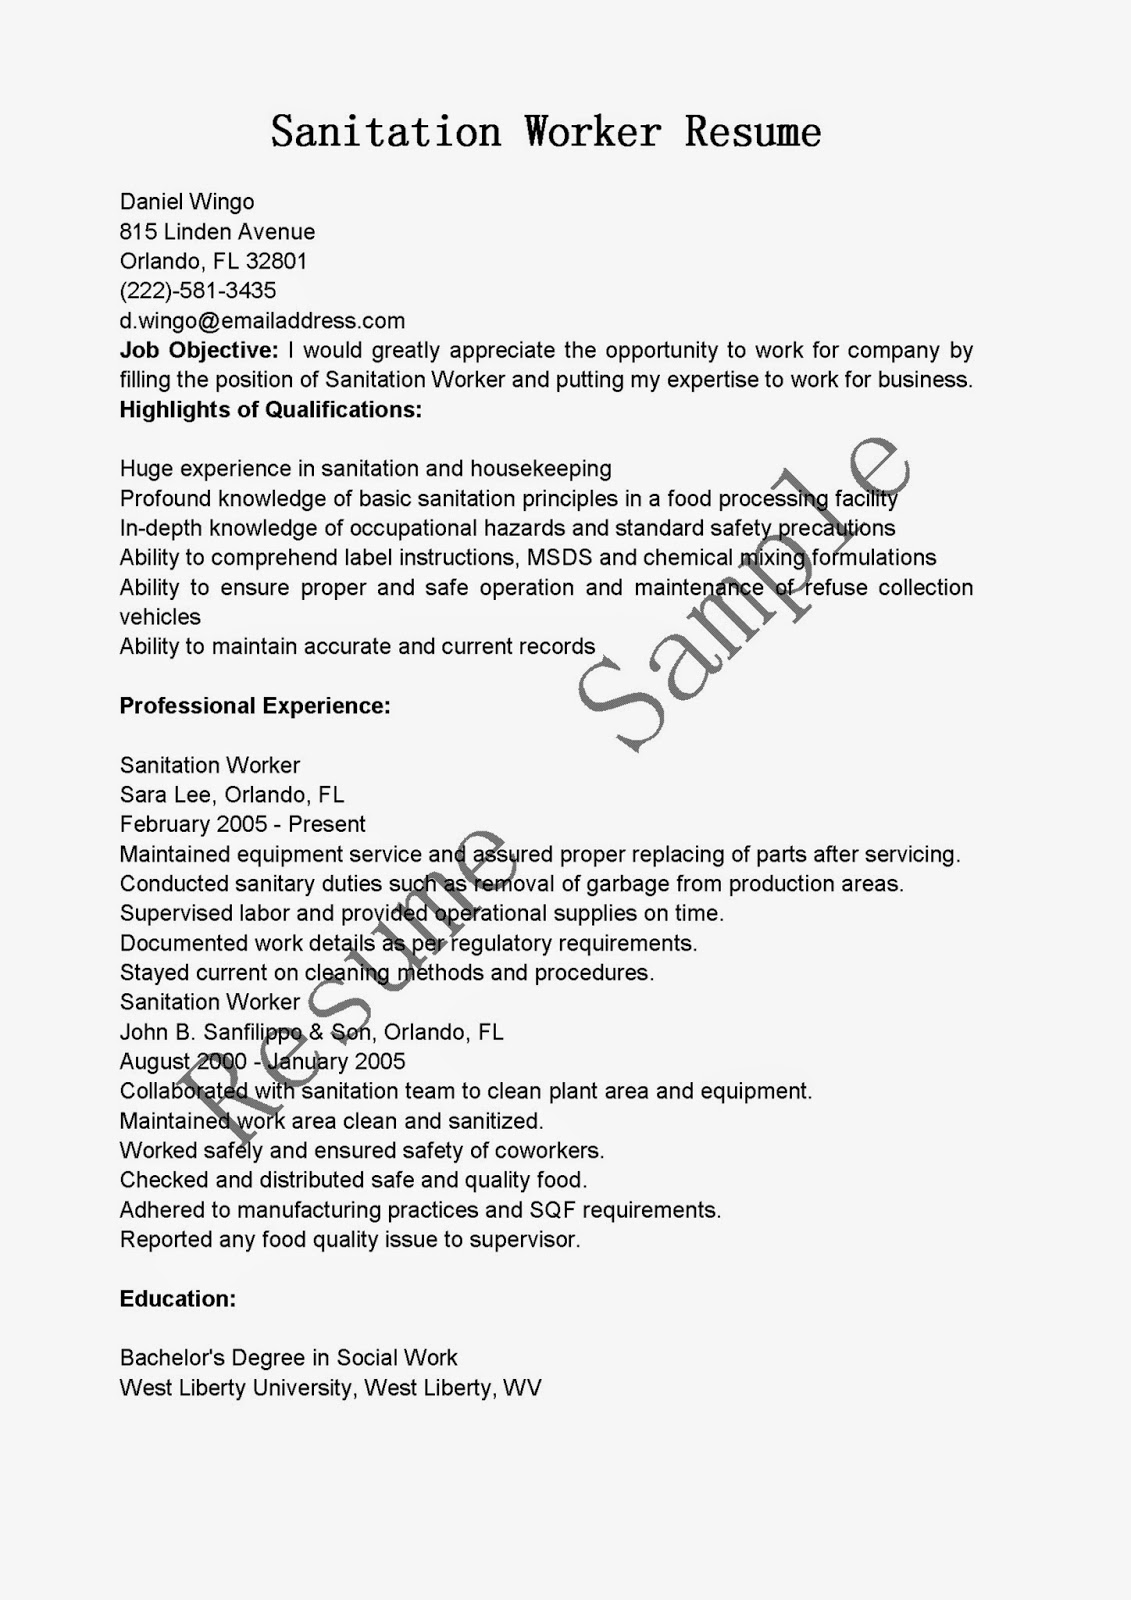 sample resume home support worker resume samples writing sample resume home support worker sample personal support worker resume resume samples sanitation worker resume sample